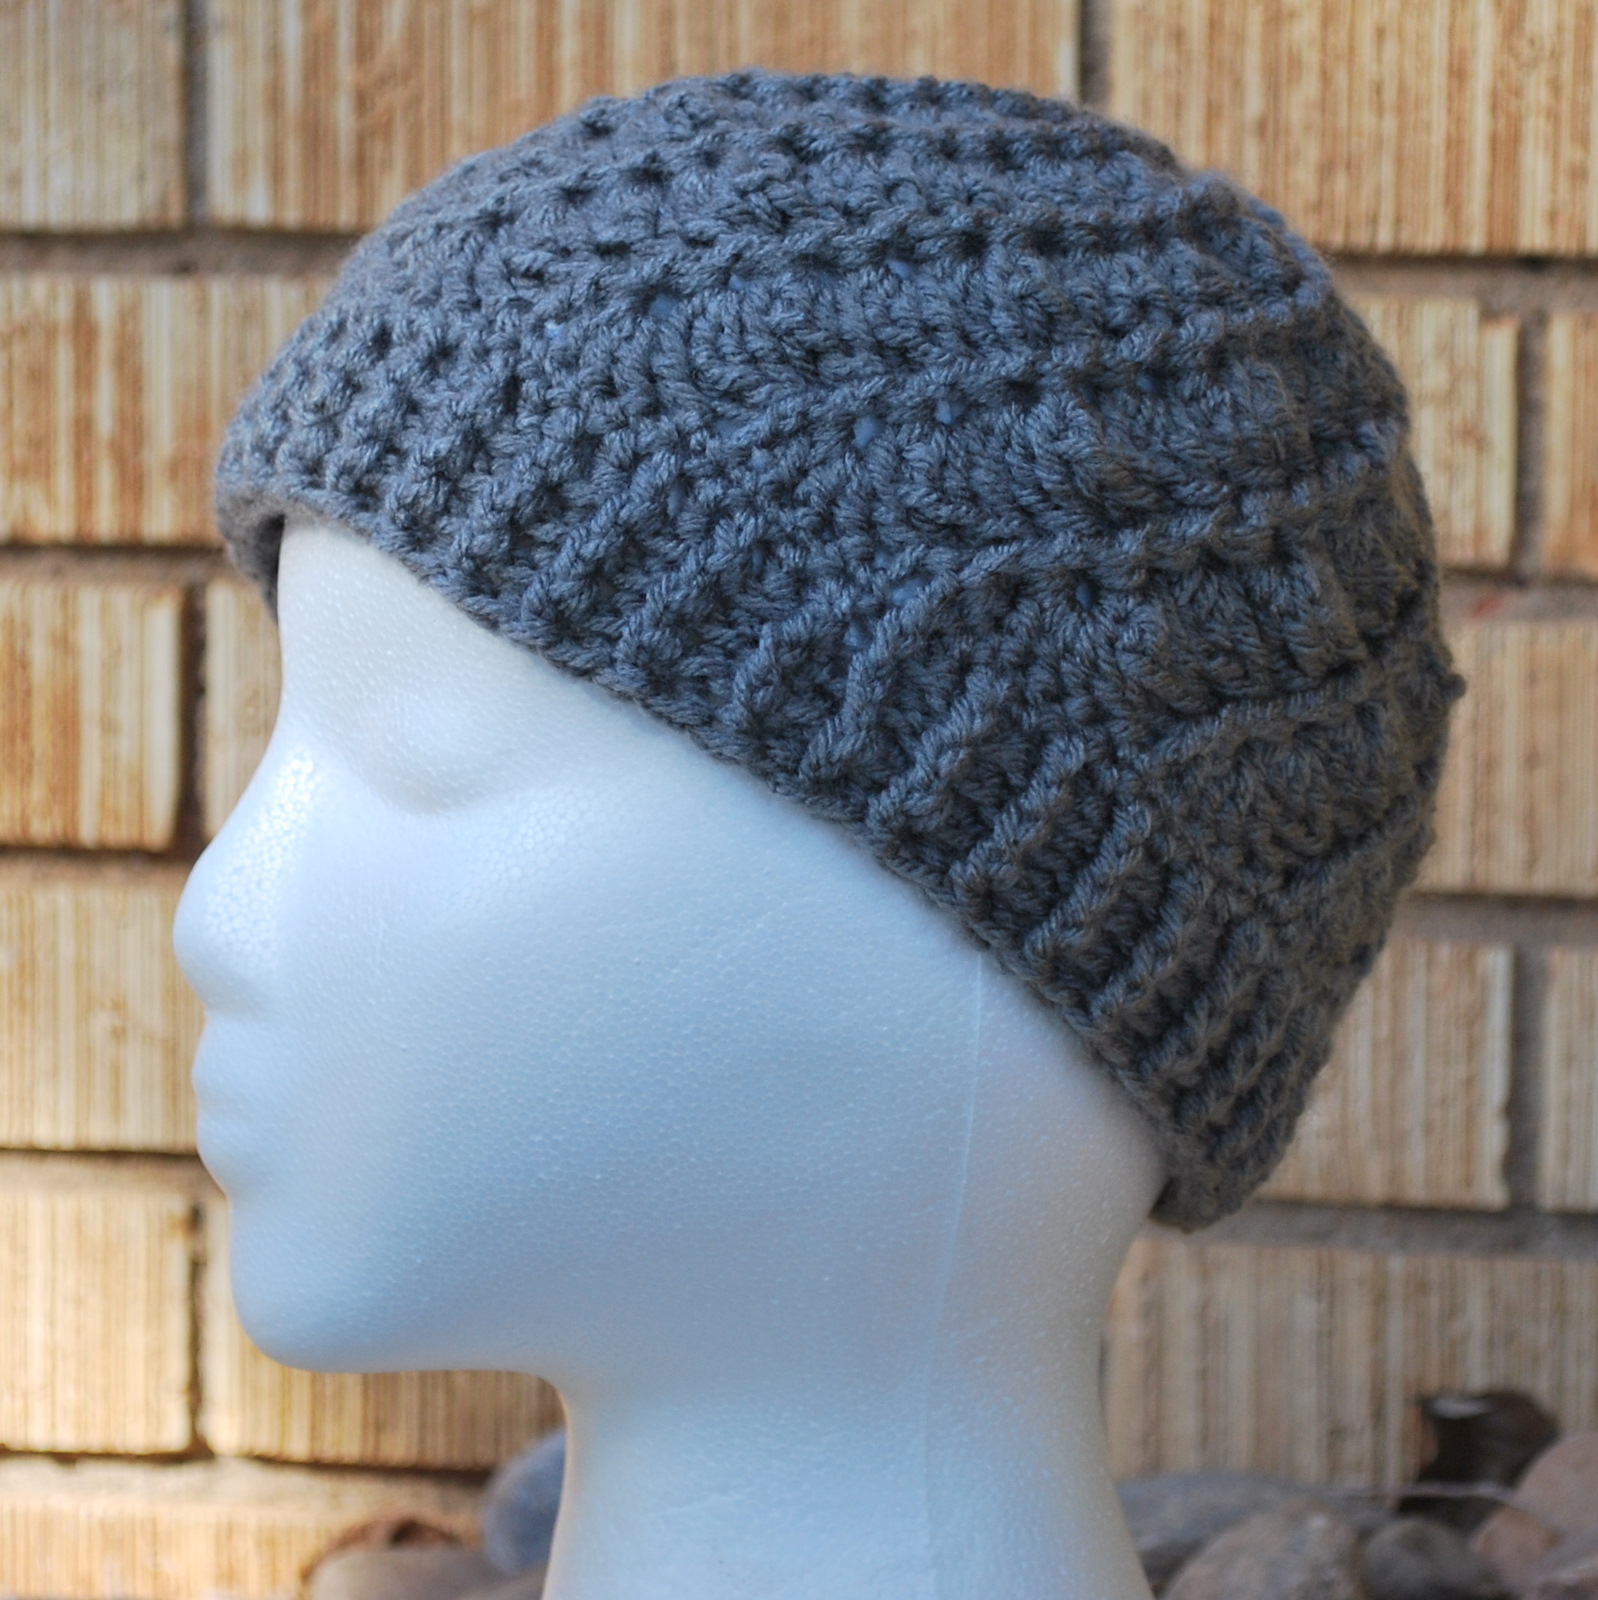 CROCHET PATTERN FOR MEN BEANIES - Crochet Club